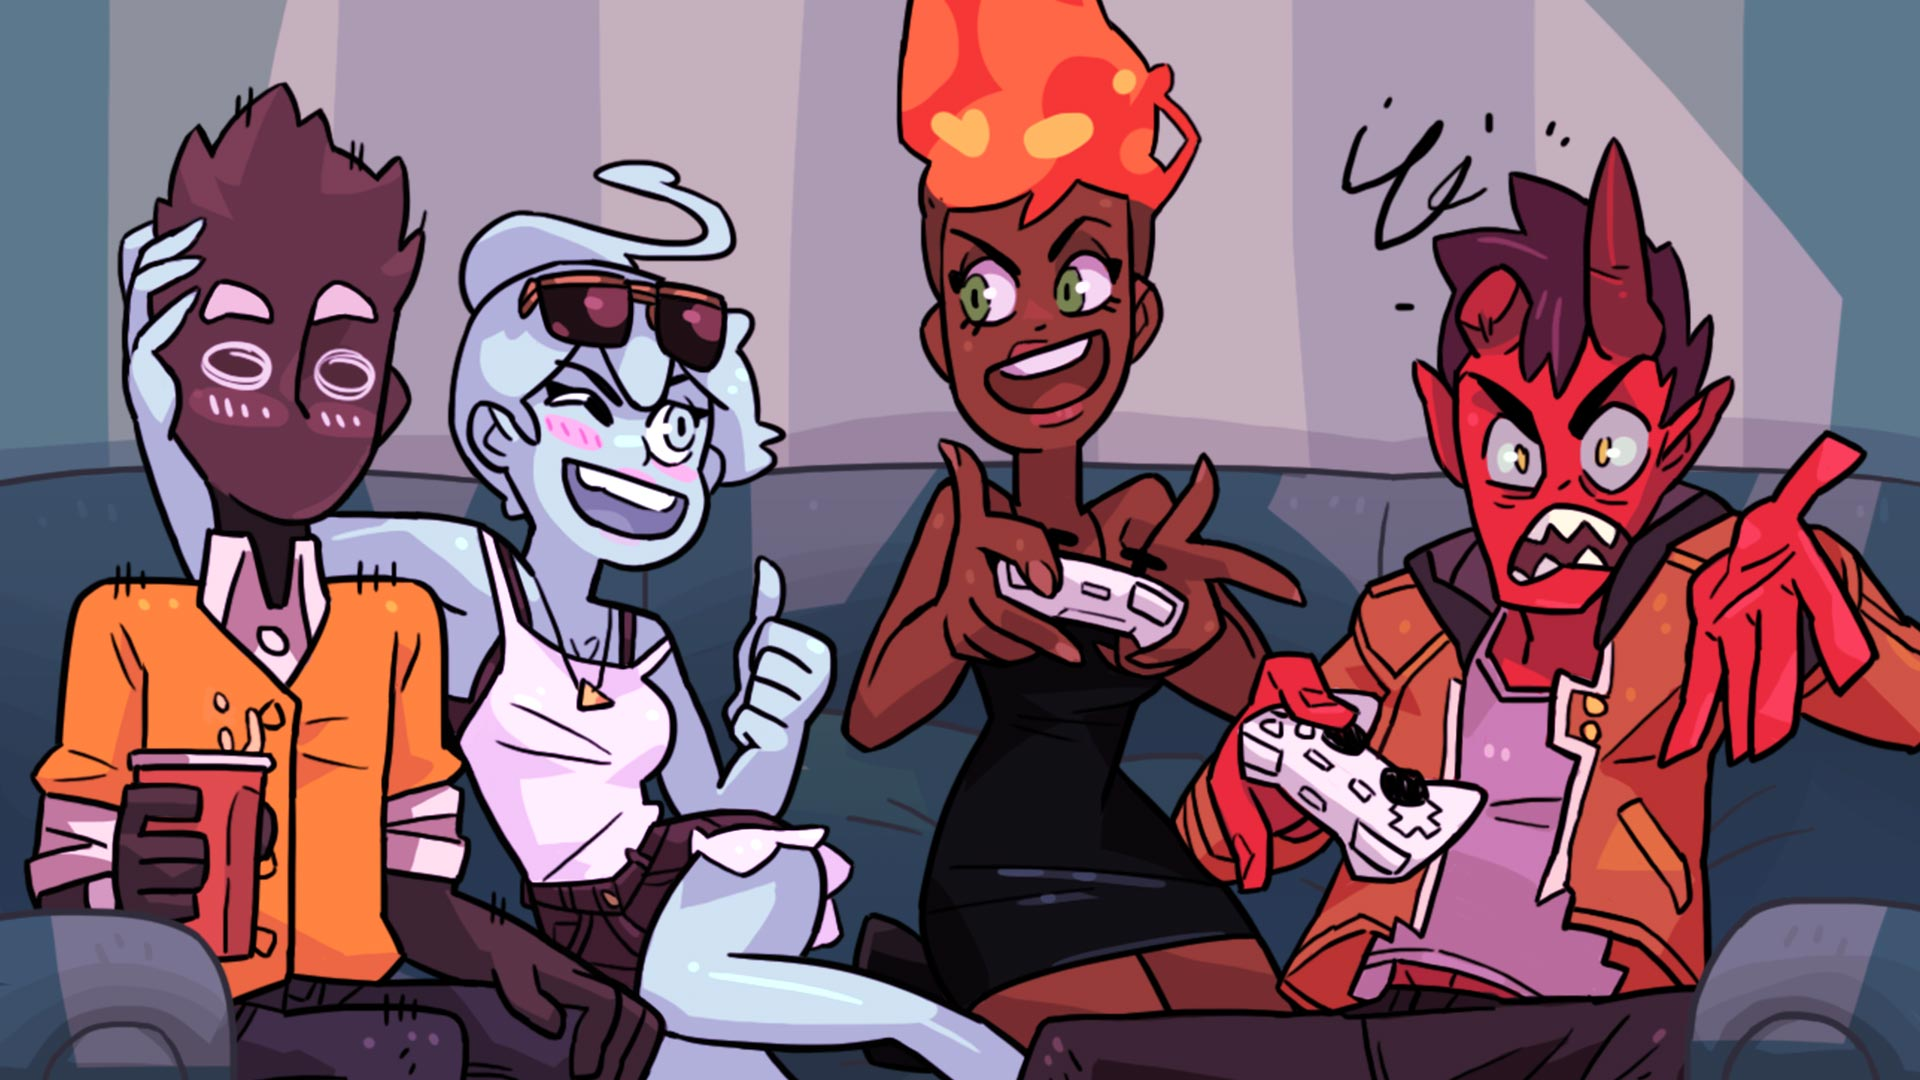 Steam card exchange showcase monster prom card 6 of 8artwork gaming thecheapjerseys Gallery